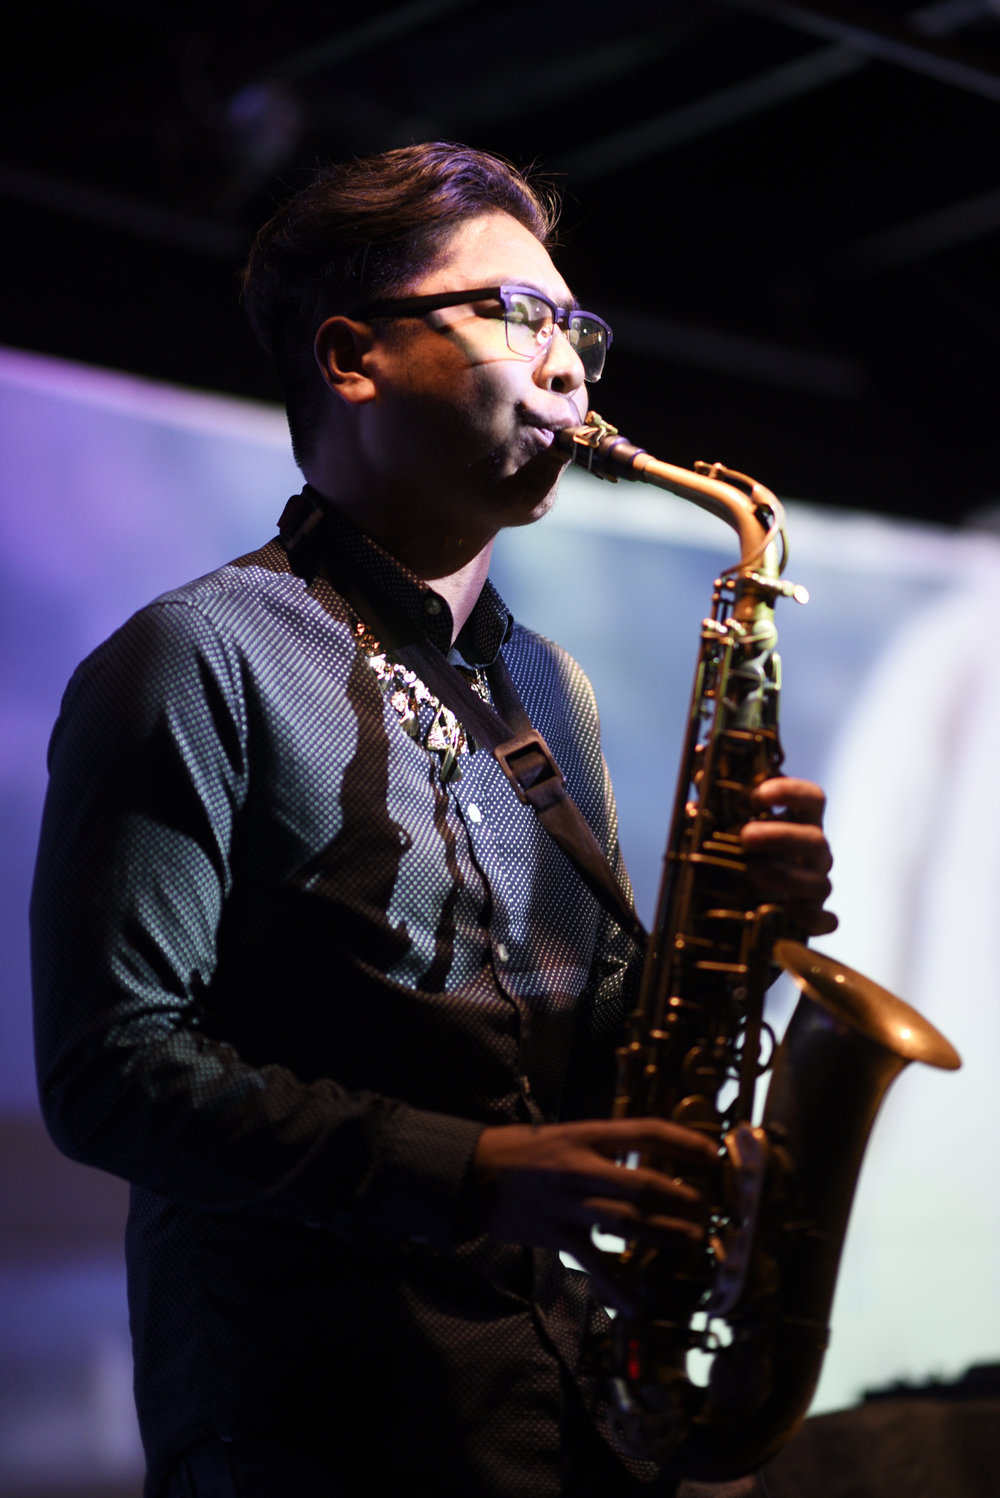 A saxophone player accompanied Kyleeil during his set.